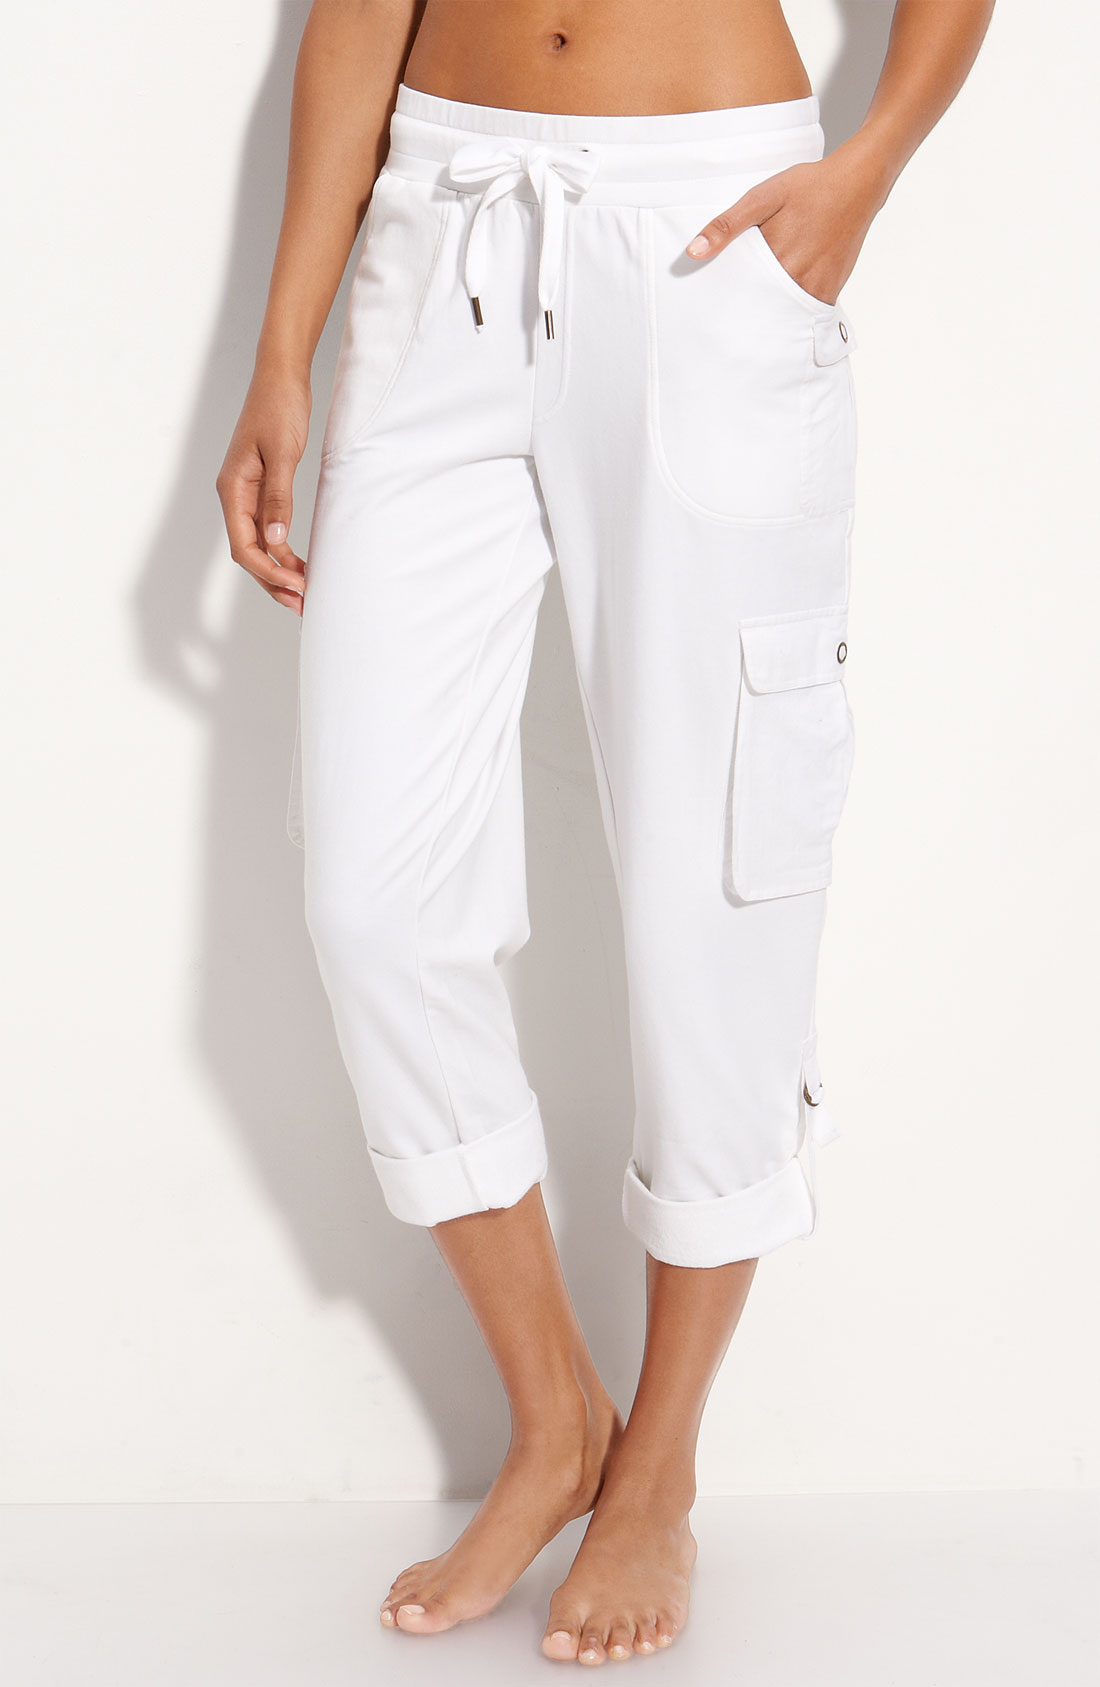 Luxury Details About New Womens White Lightweight Combat Trousers Cargo Jeans